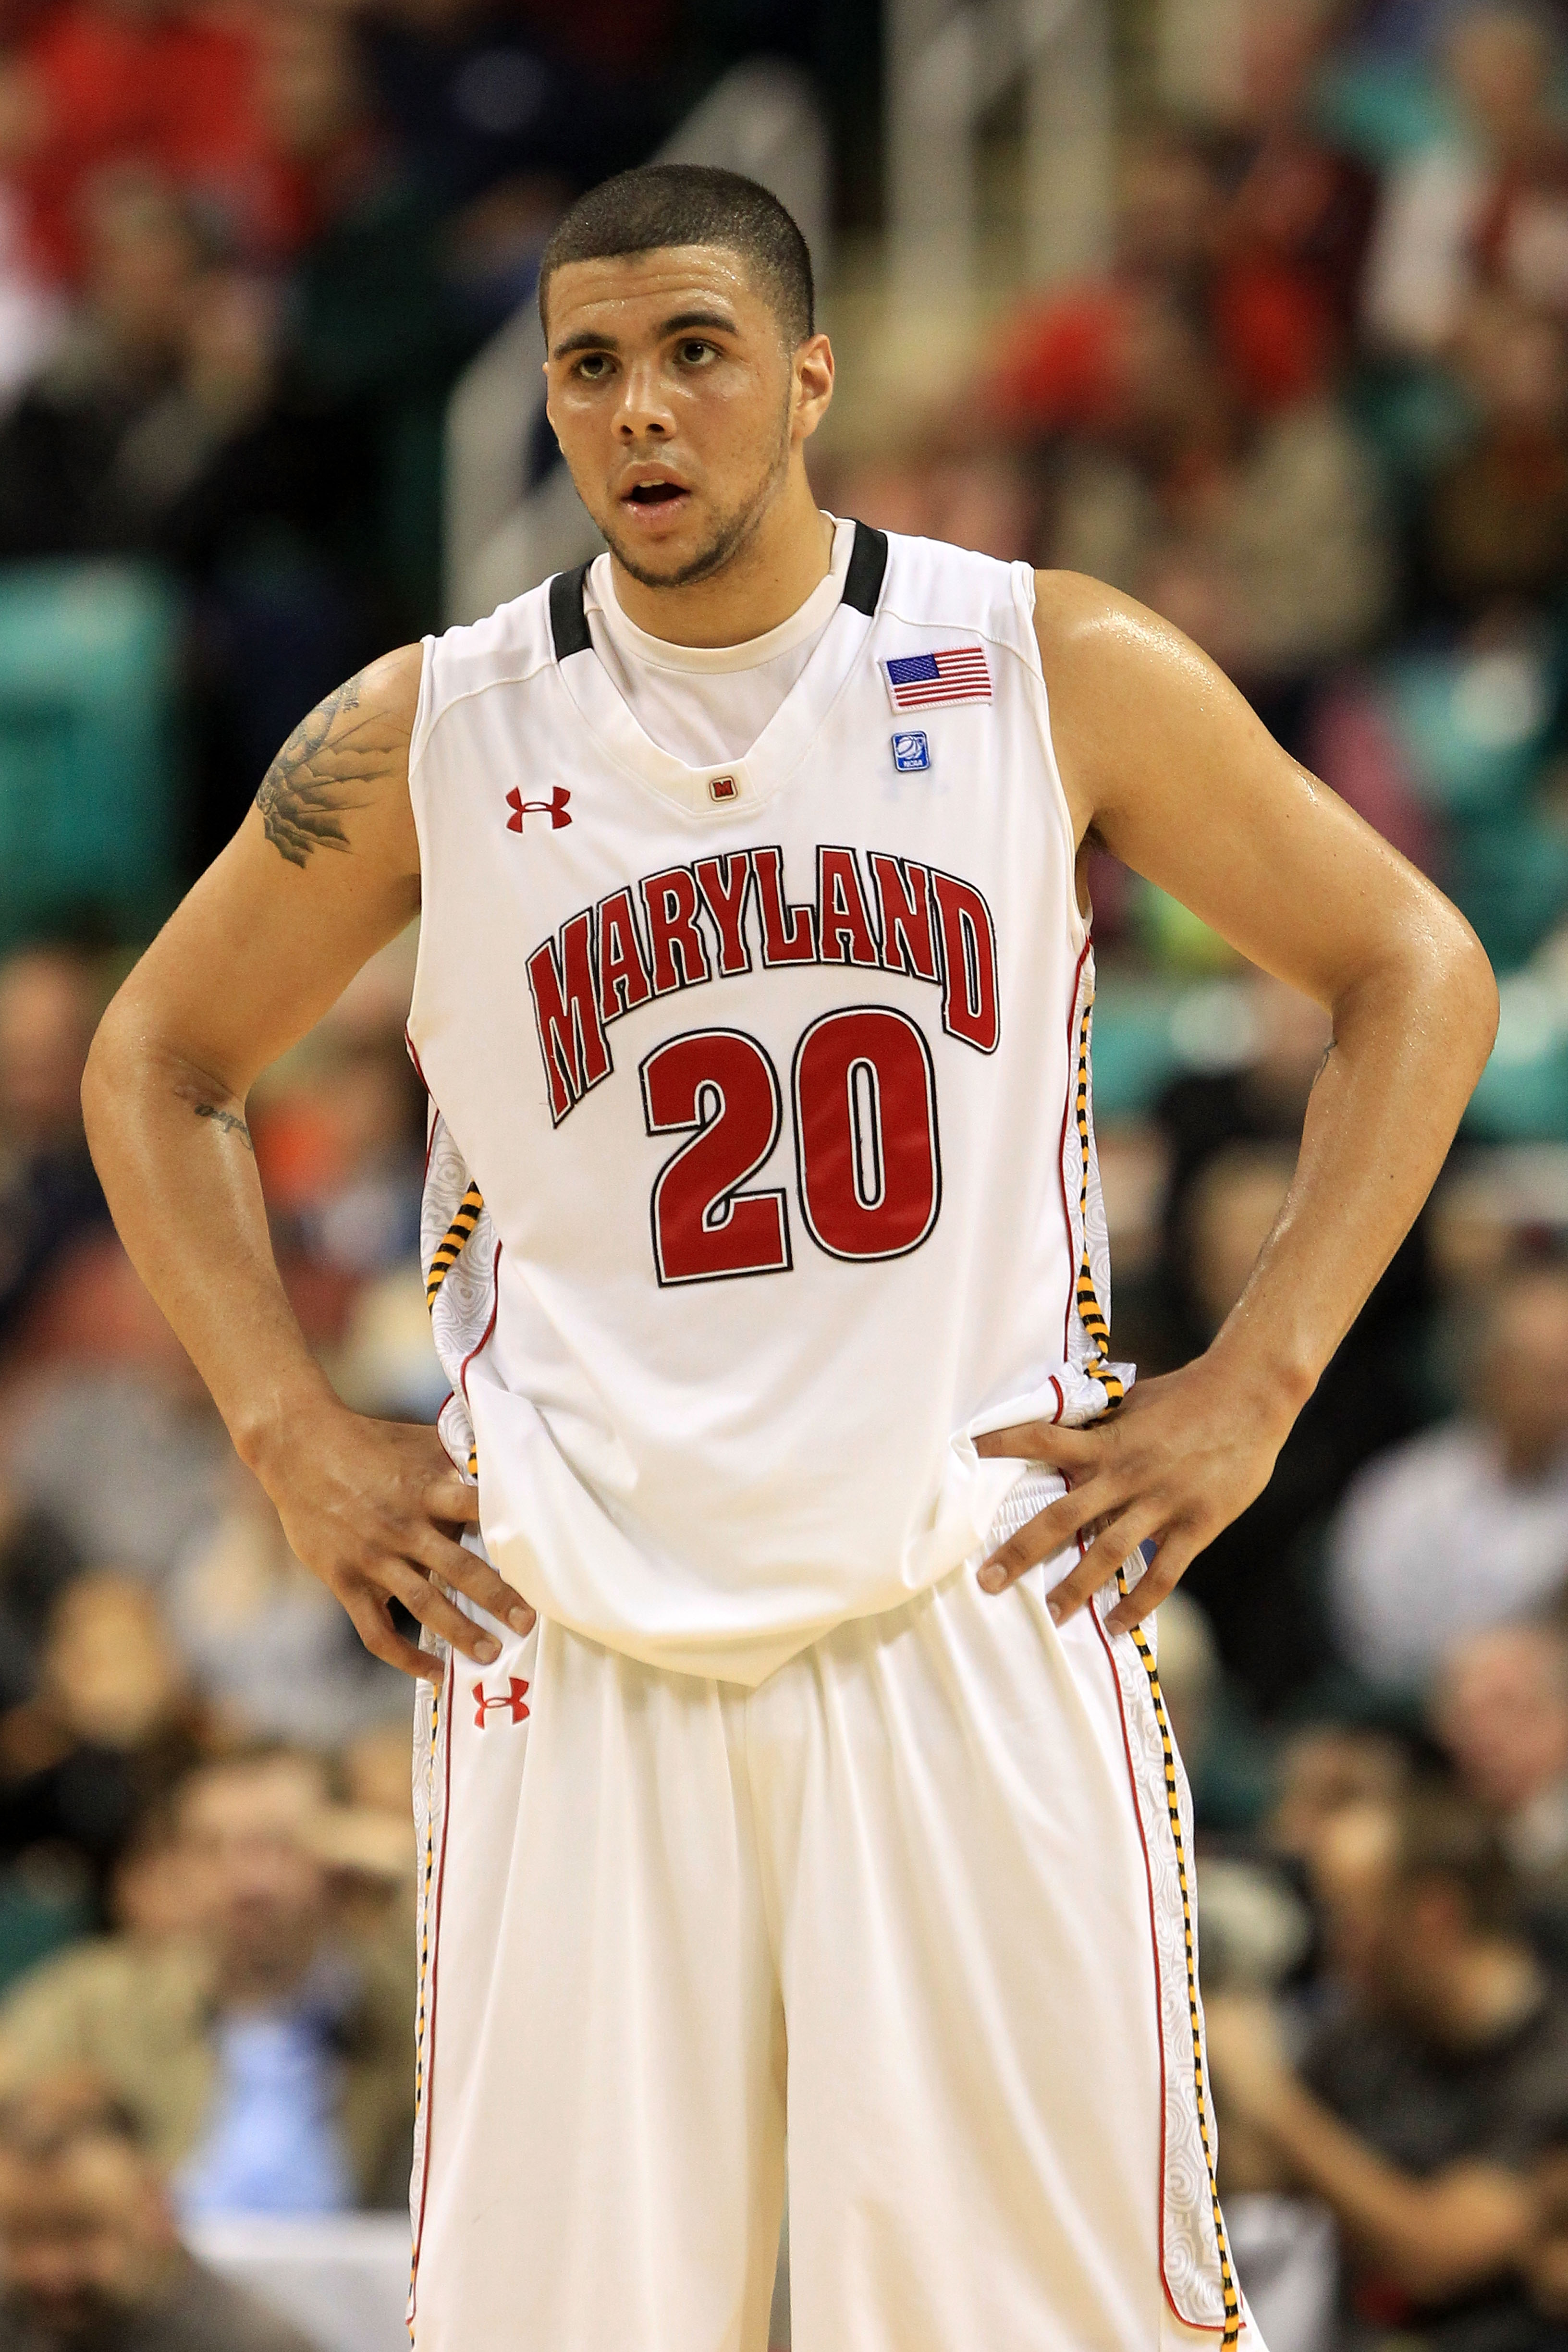 GREENSBORO, NC - MARCH 10:  Jordan Williams #20 of the Maryland Terrapins looks on during the first half of the game against the North Carolina State Wolfpack in the first round of the 2011 ACC men's basketball tournament at the Greensboro Coliseum on Mar